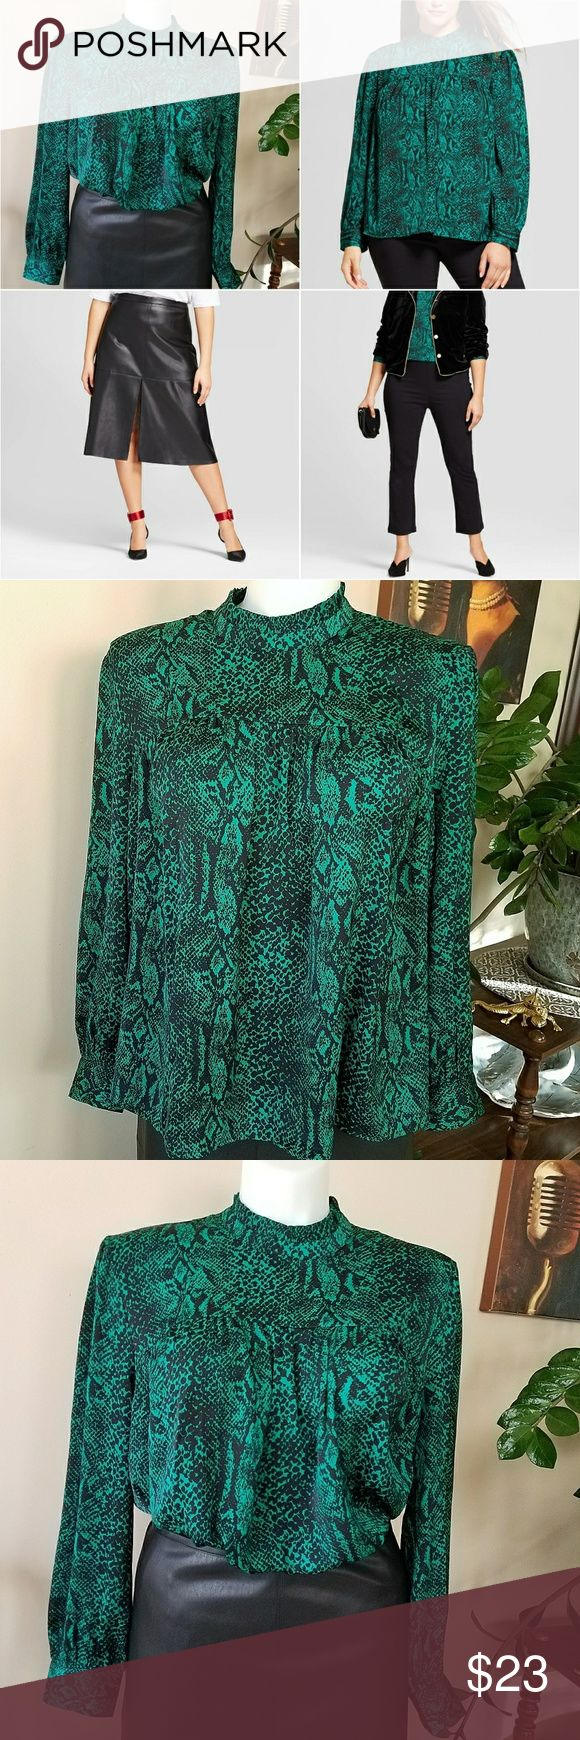 Silky Emerald Green Blouse   Who What Wear   2X